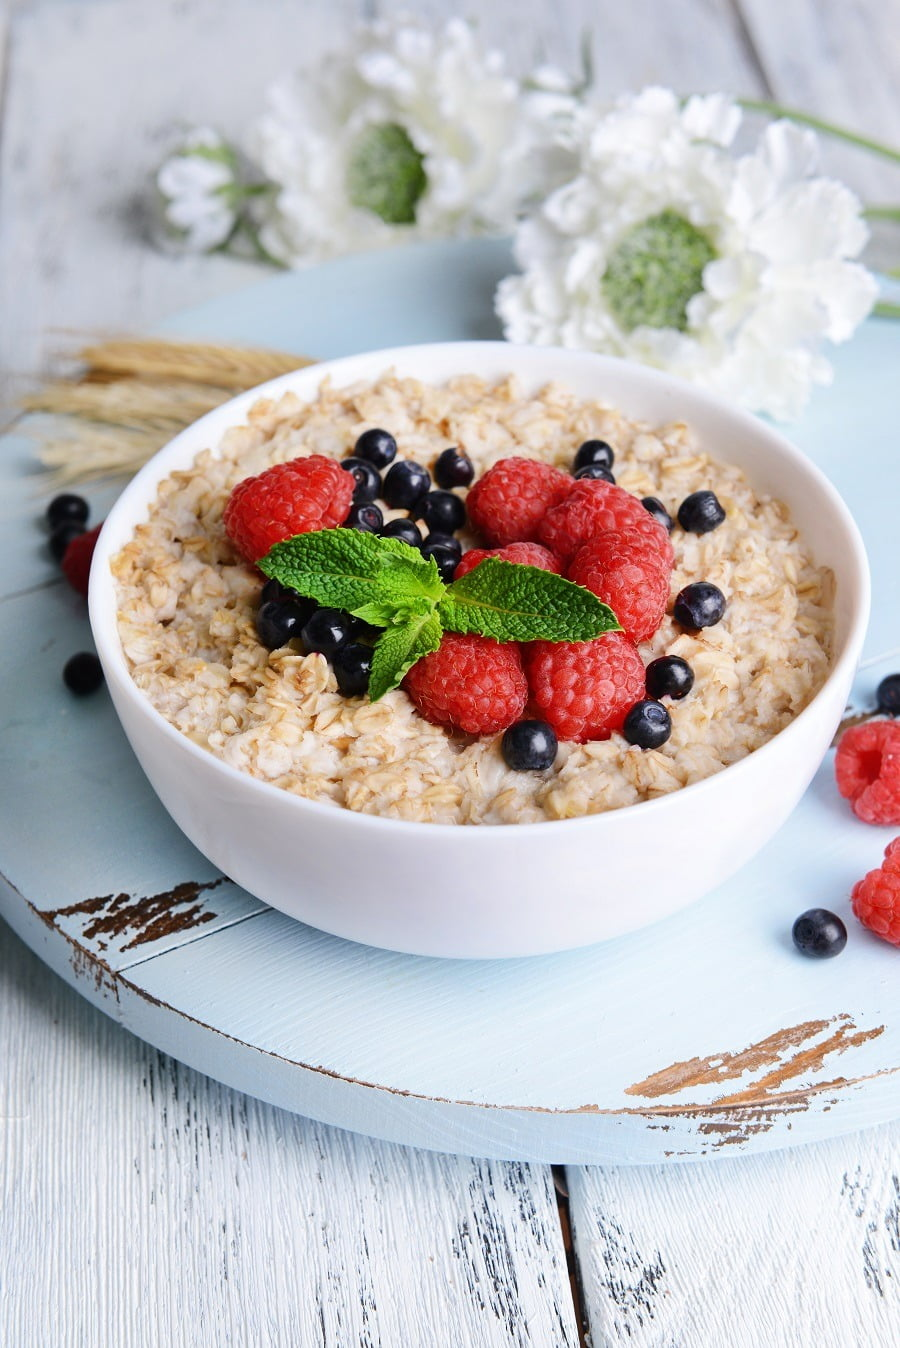 Are steel cut oats better than rolled oats?